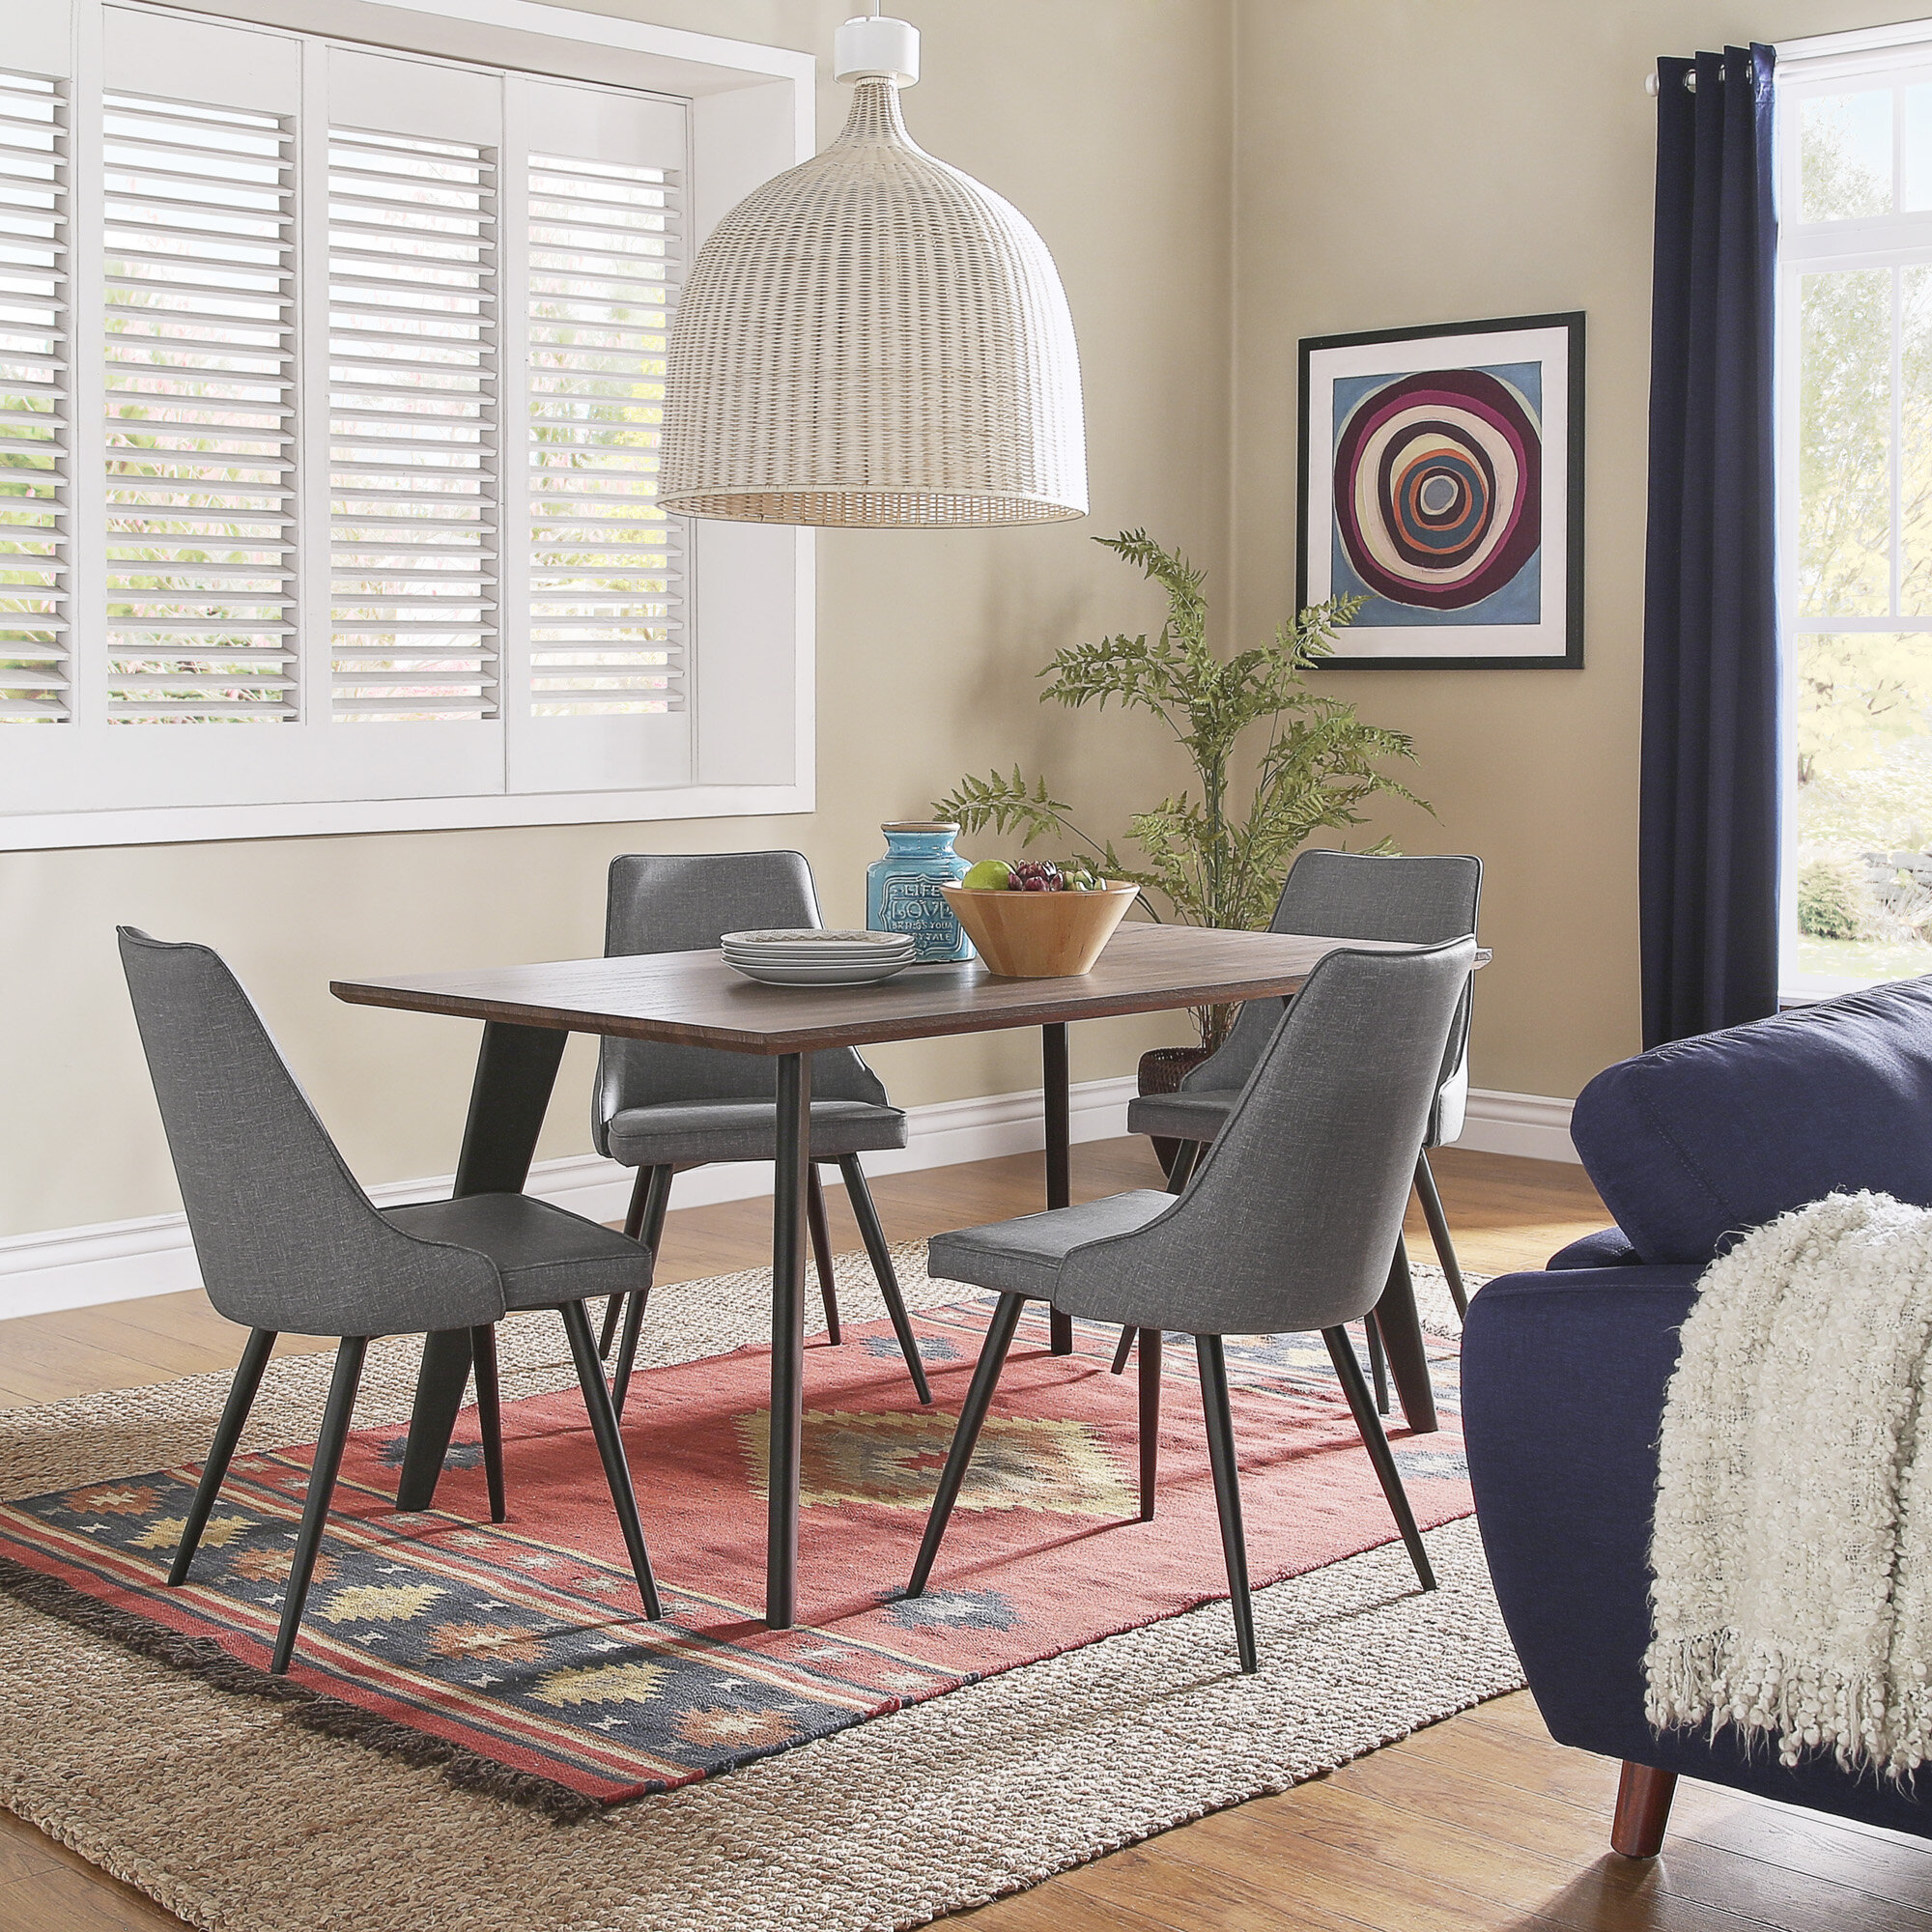 Caskey 5 Piece Dining Set Inside 2018 Turnalar 5 Piece Dining Sets (View 4 of 20)